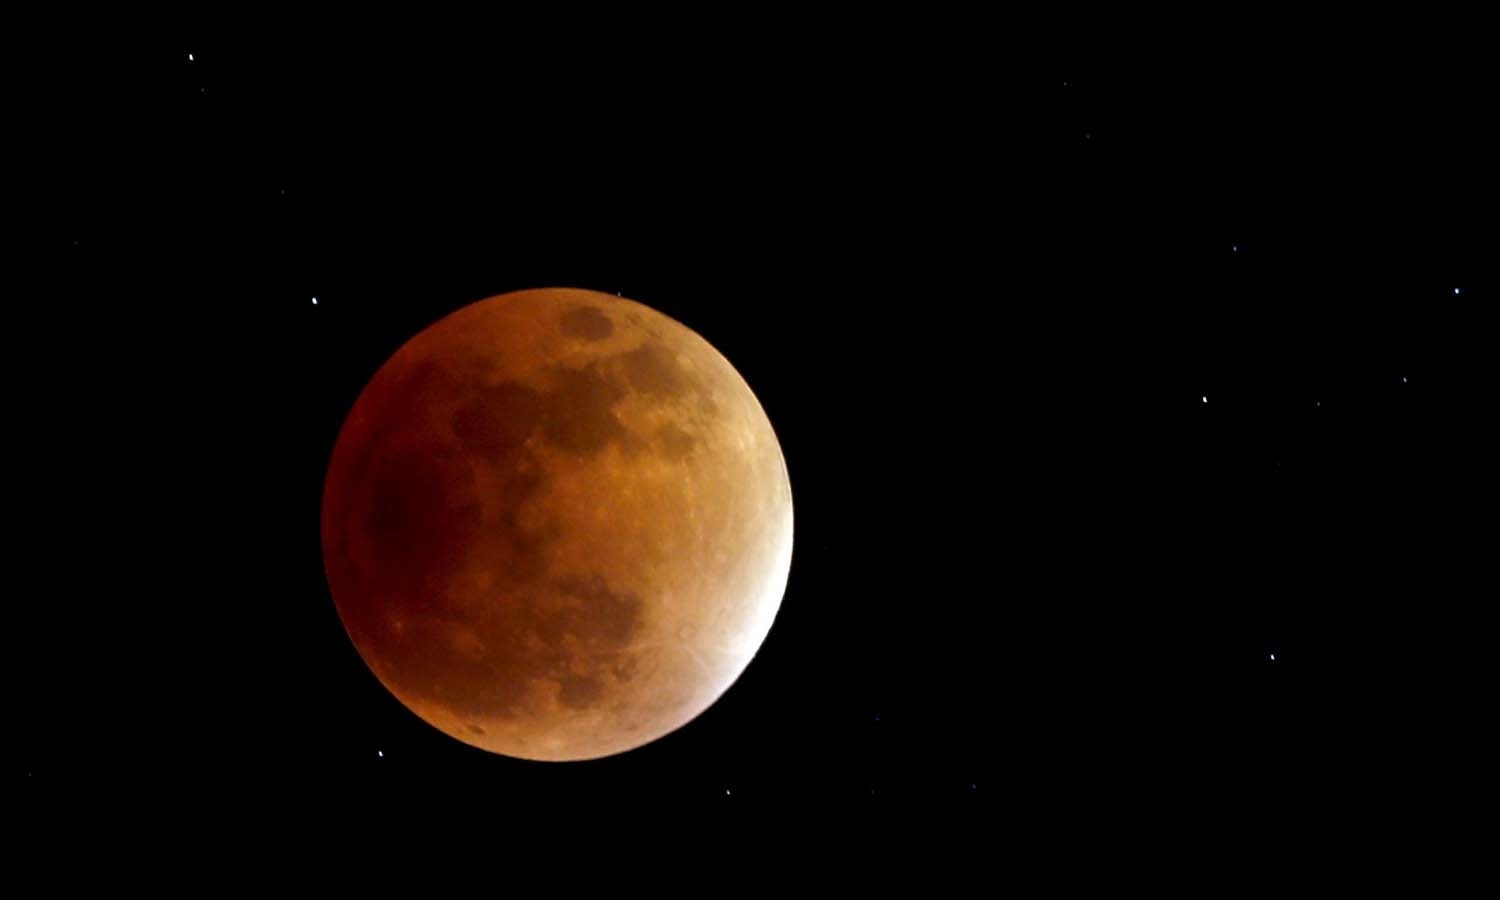 The moon, appearing in a dim red colour, is covered by the Earth's shadow during a total lunar eclipse in Bogota, Colombia. — Reuters